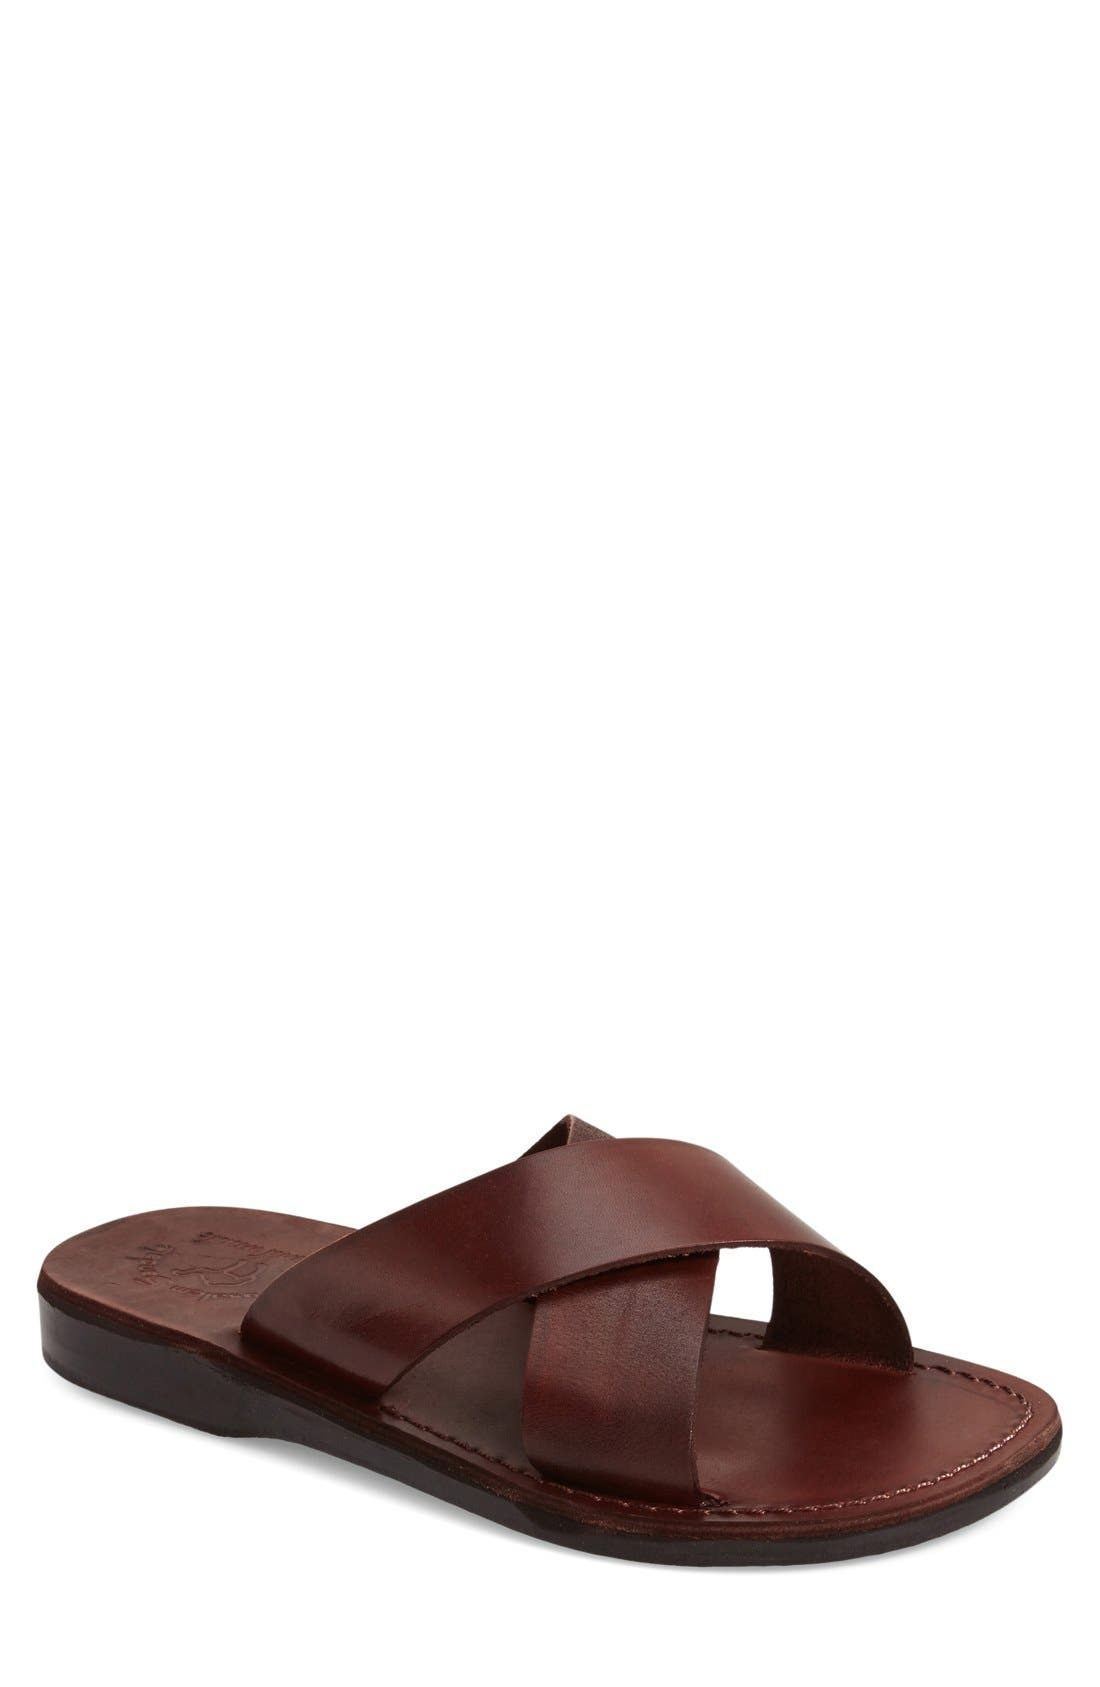 JERUSALEM SANDALS 'Elan' Slide Sandal, Main, color, BROWN LEATHER